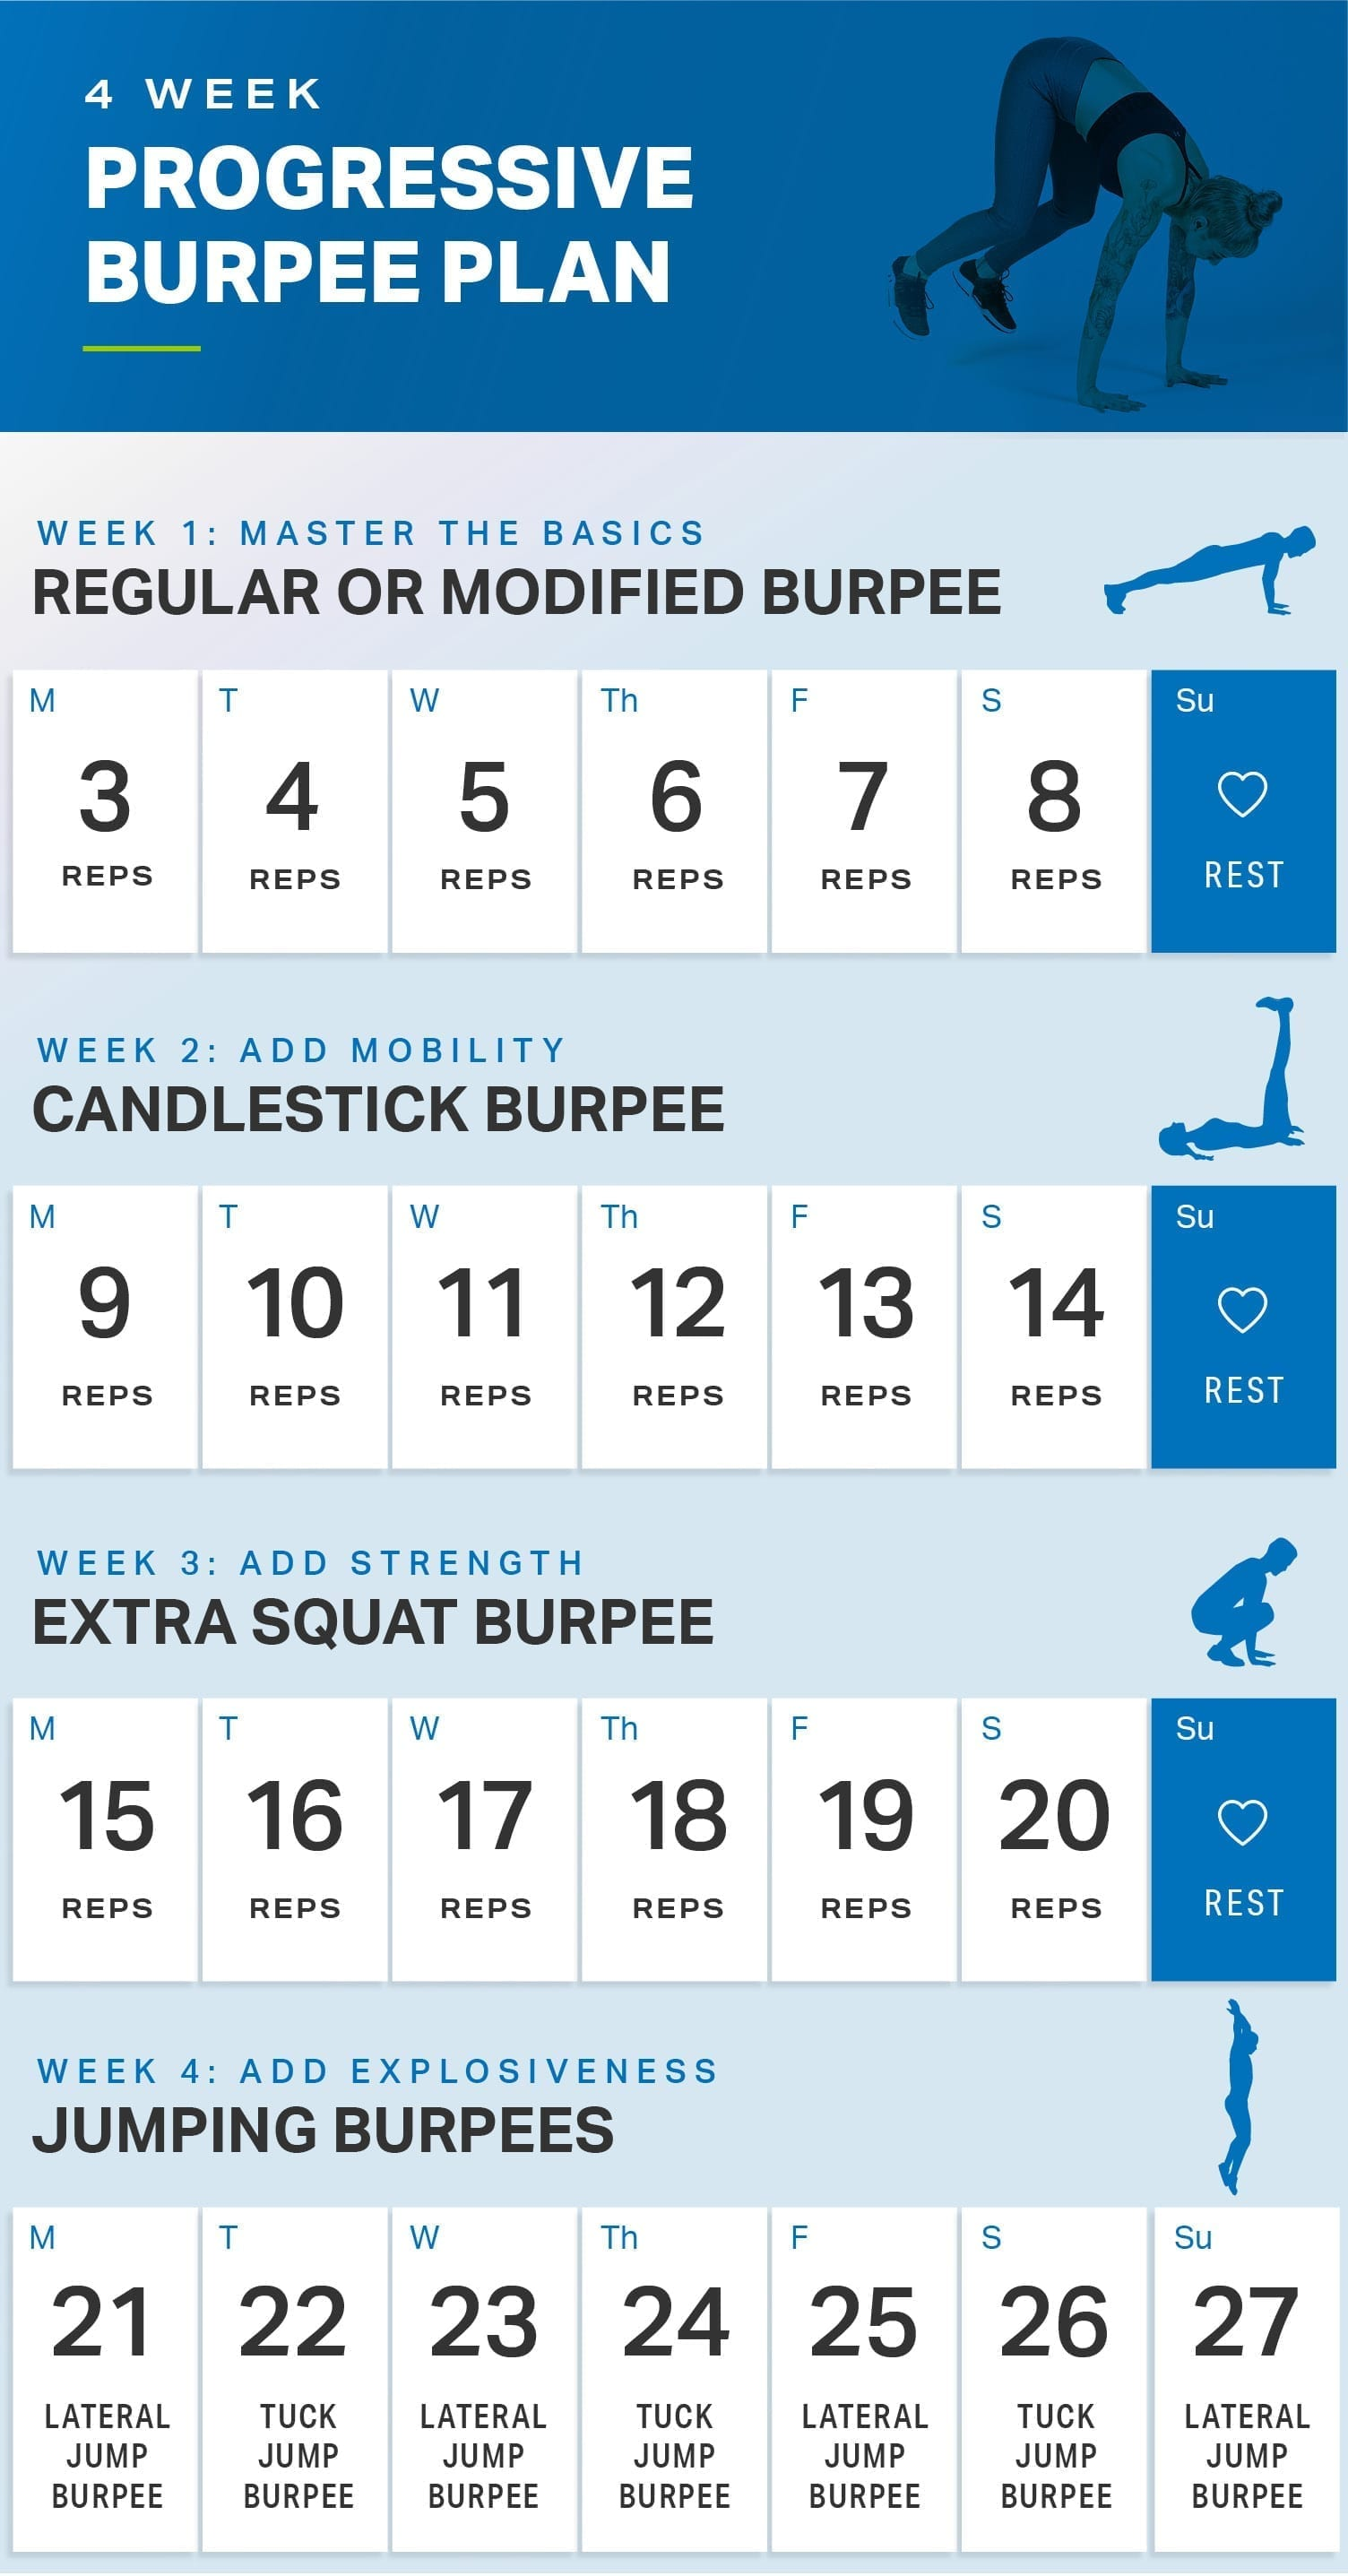 4 Week Progressive Burpee Plan